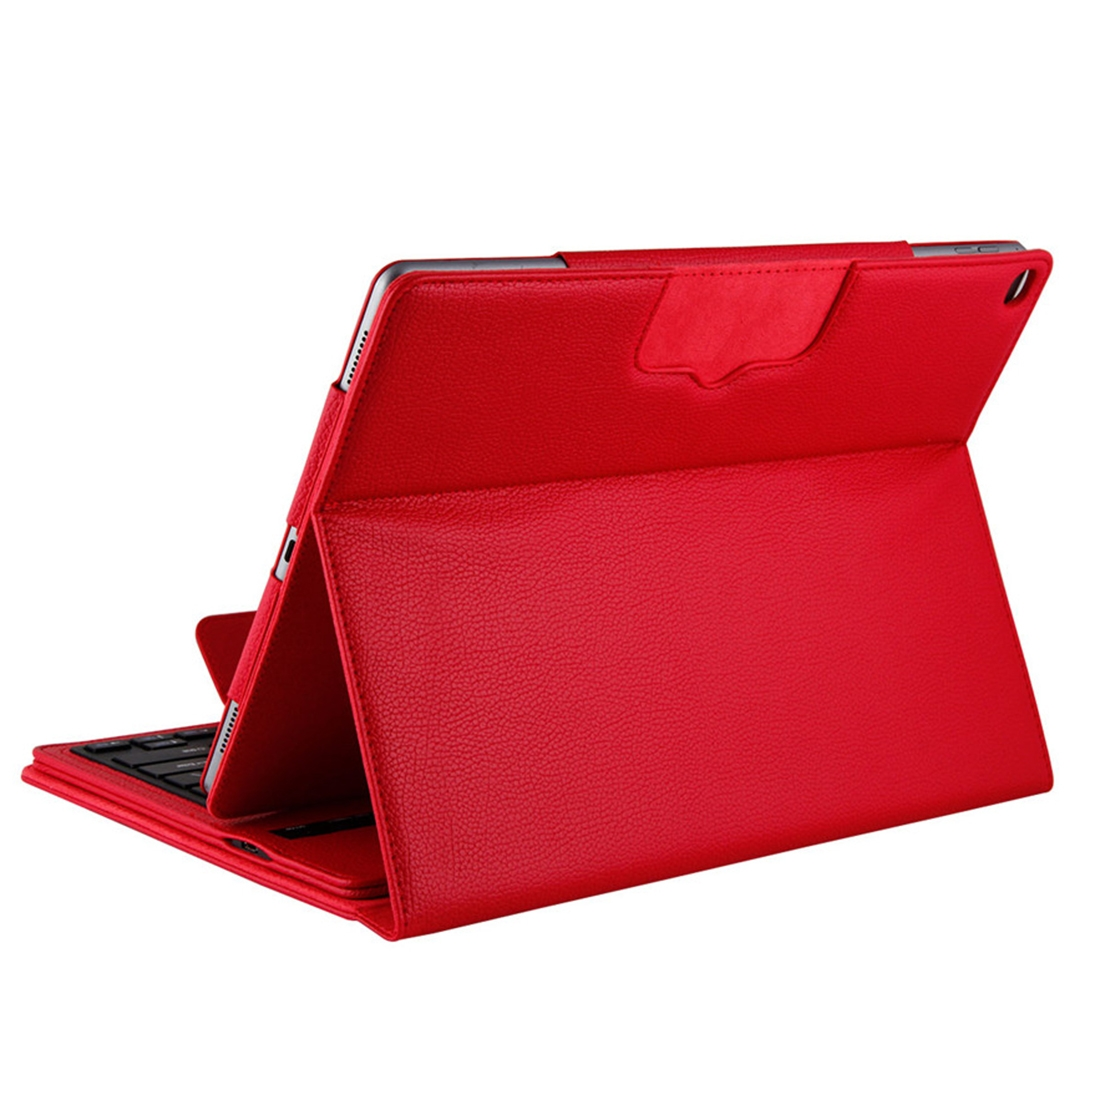 iPad Pro 12.9 Case With Keyboard (2015-17) With Leather Case & Detachable Keyboard (Red)